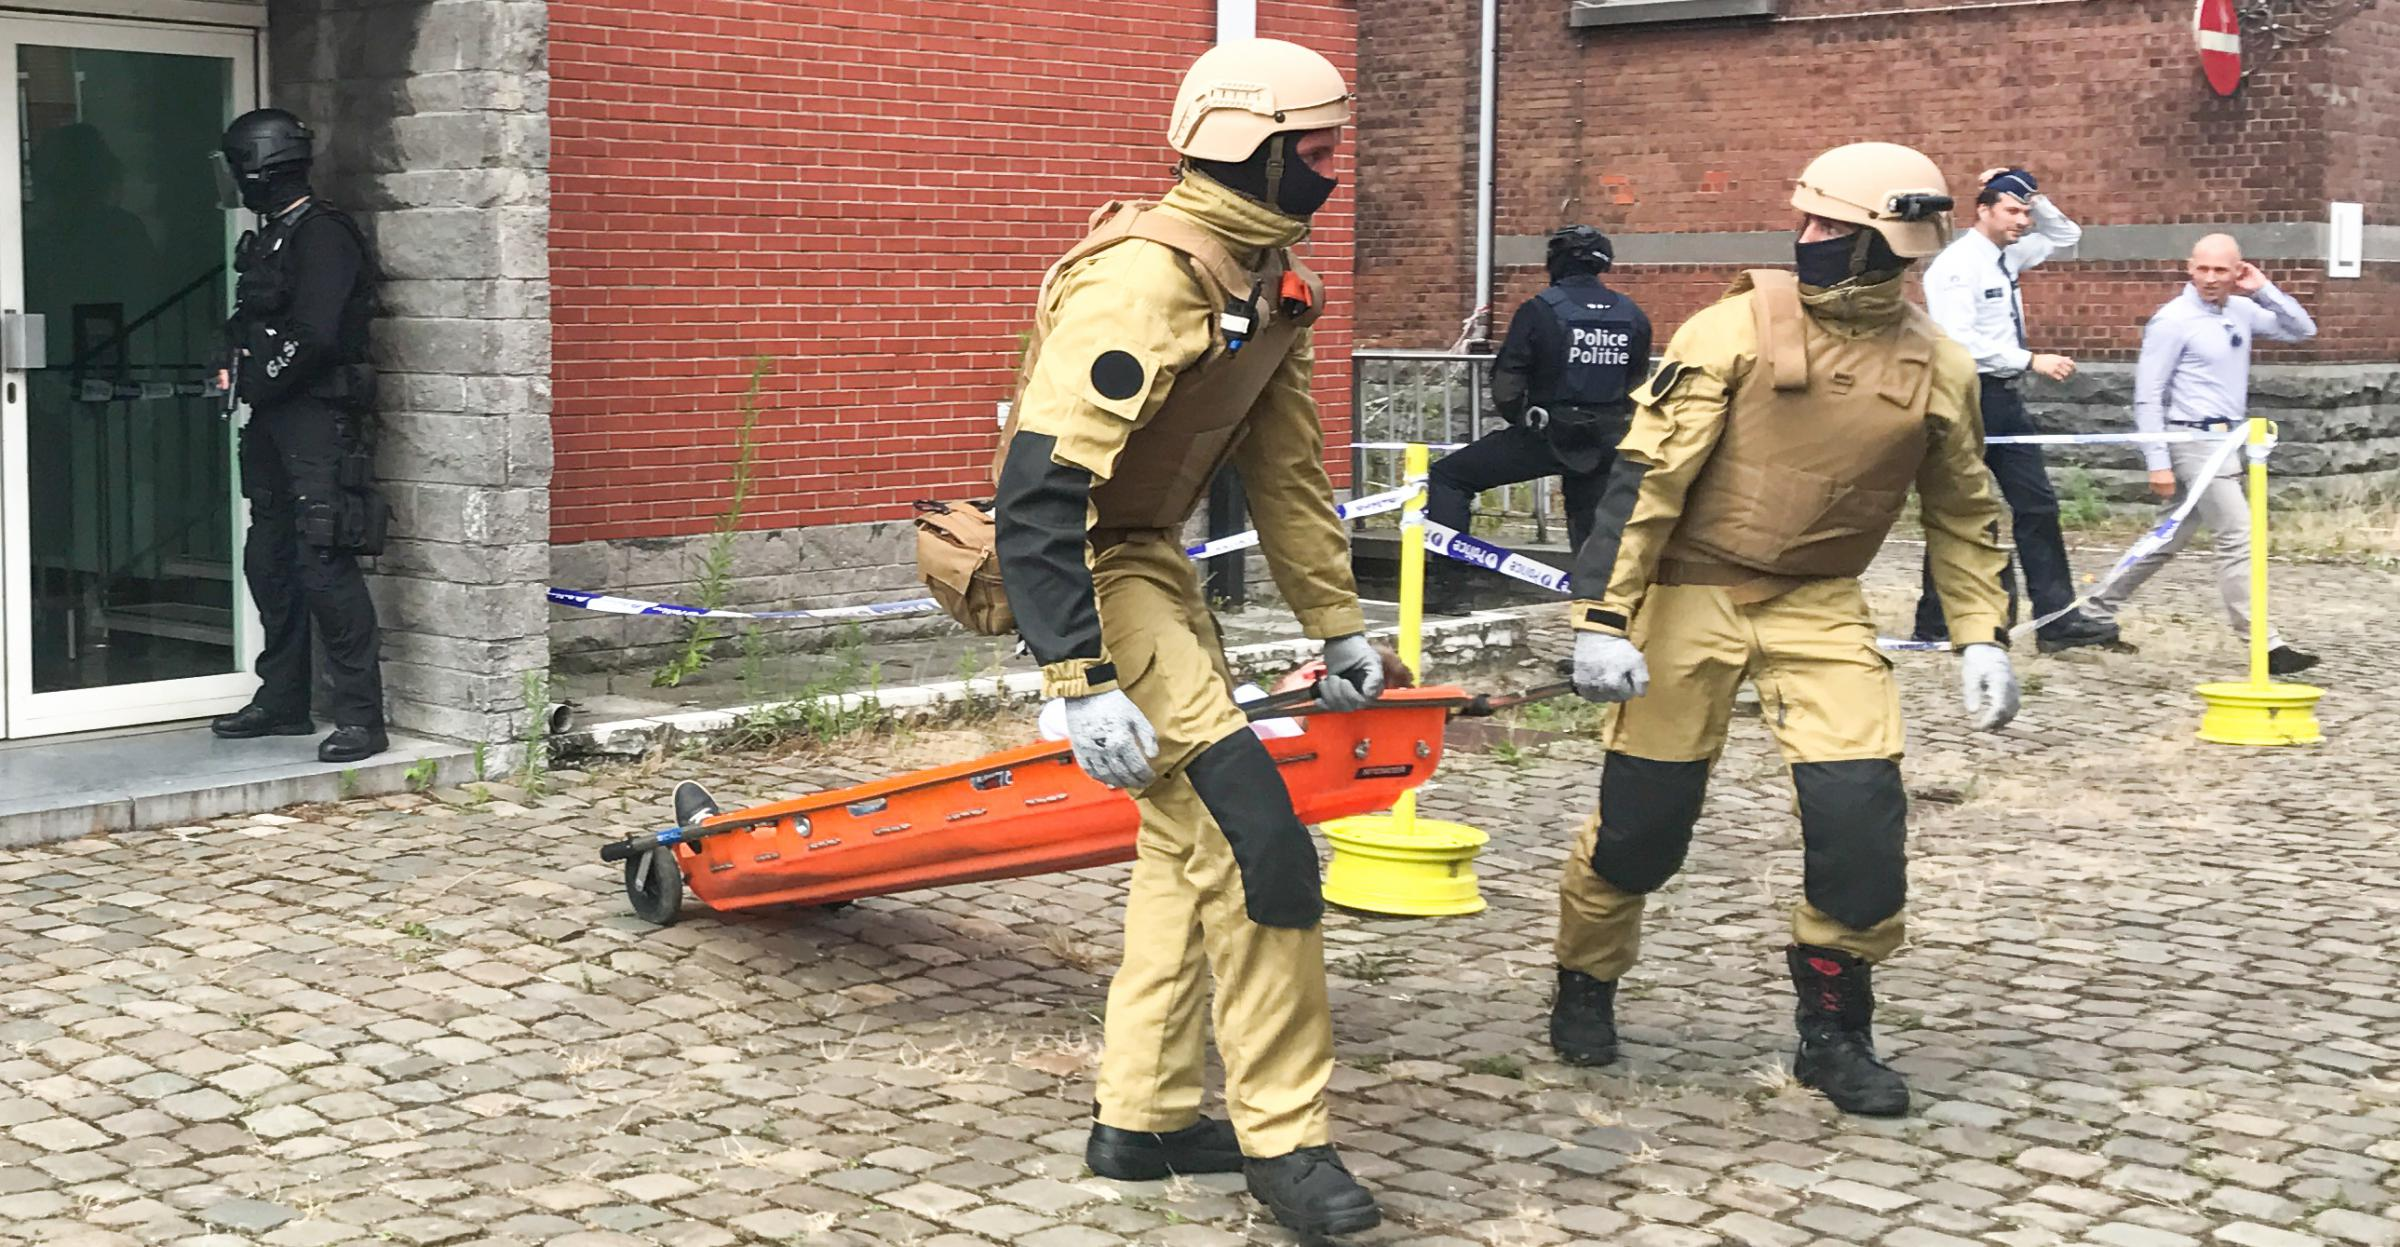 Casualty Extraction TEam - CET